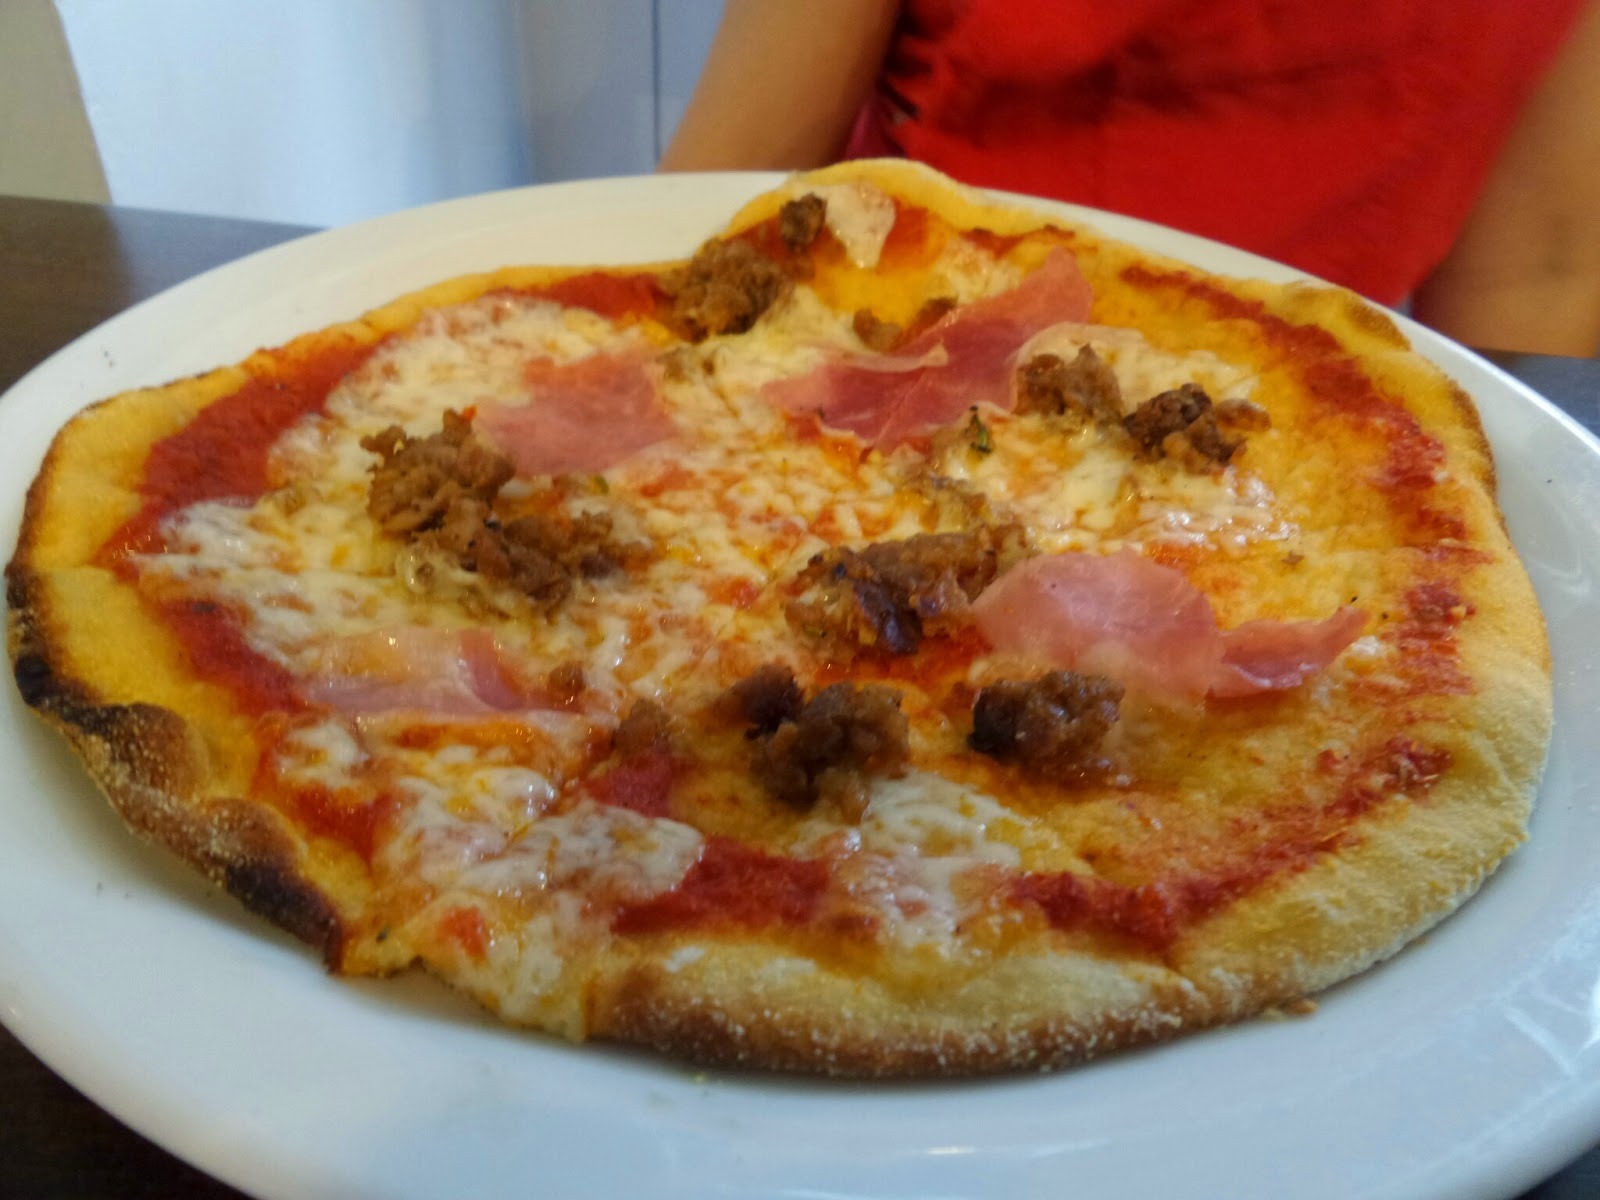 Zizzi's Bambini Pizza with Ham and Sausage Meat